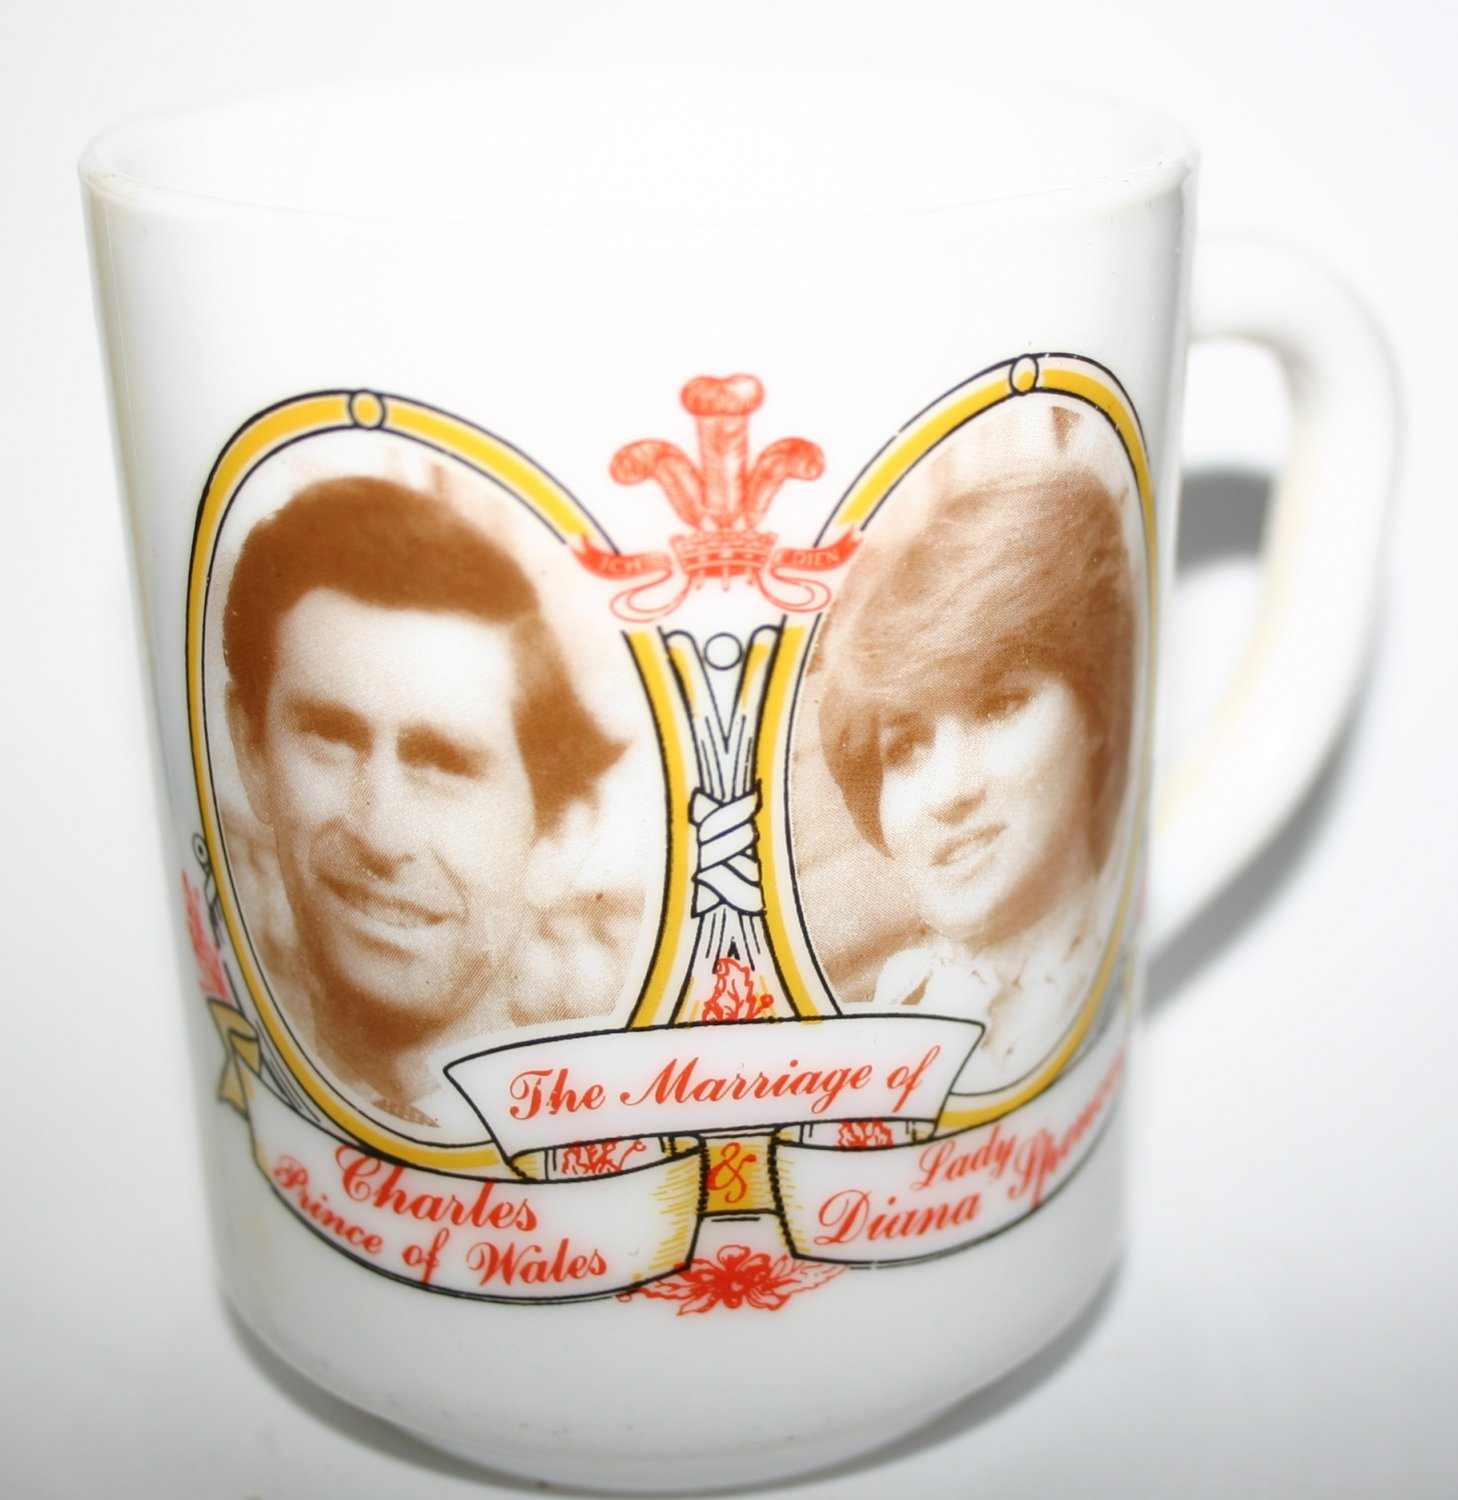 The Marriage Of Prince Charles and Lady Diana Commemorative Mug